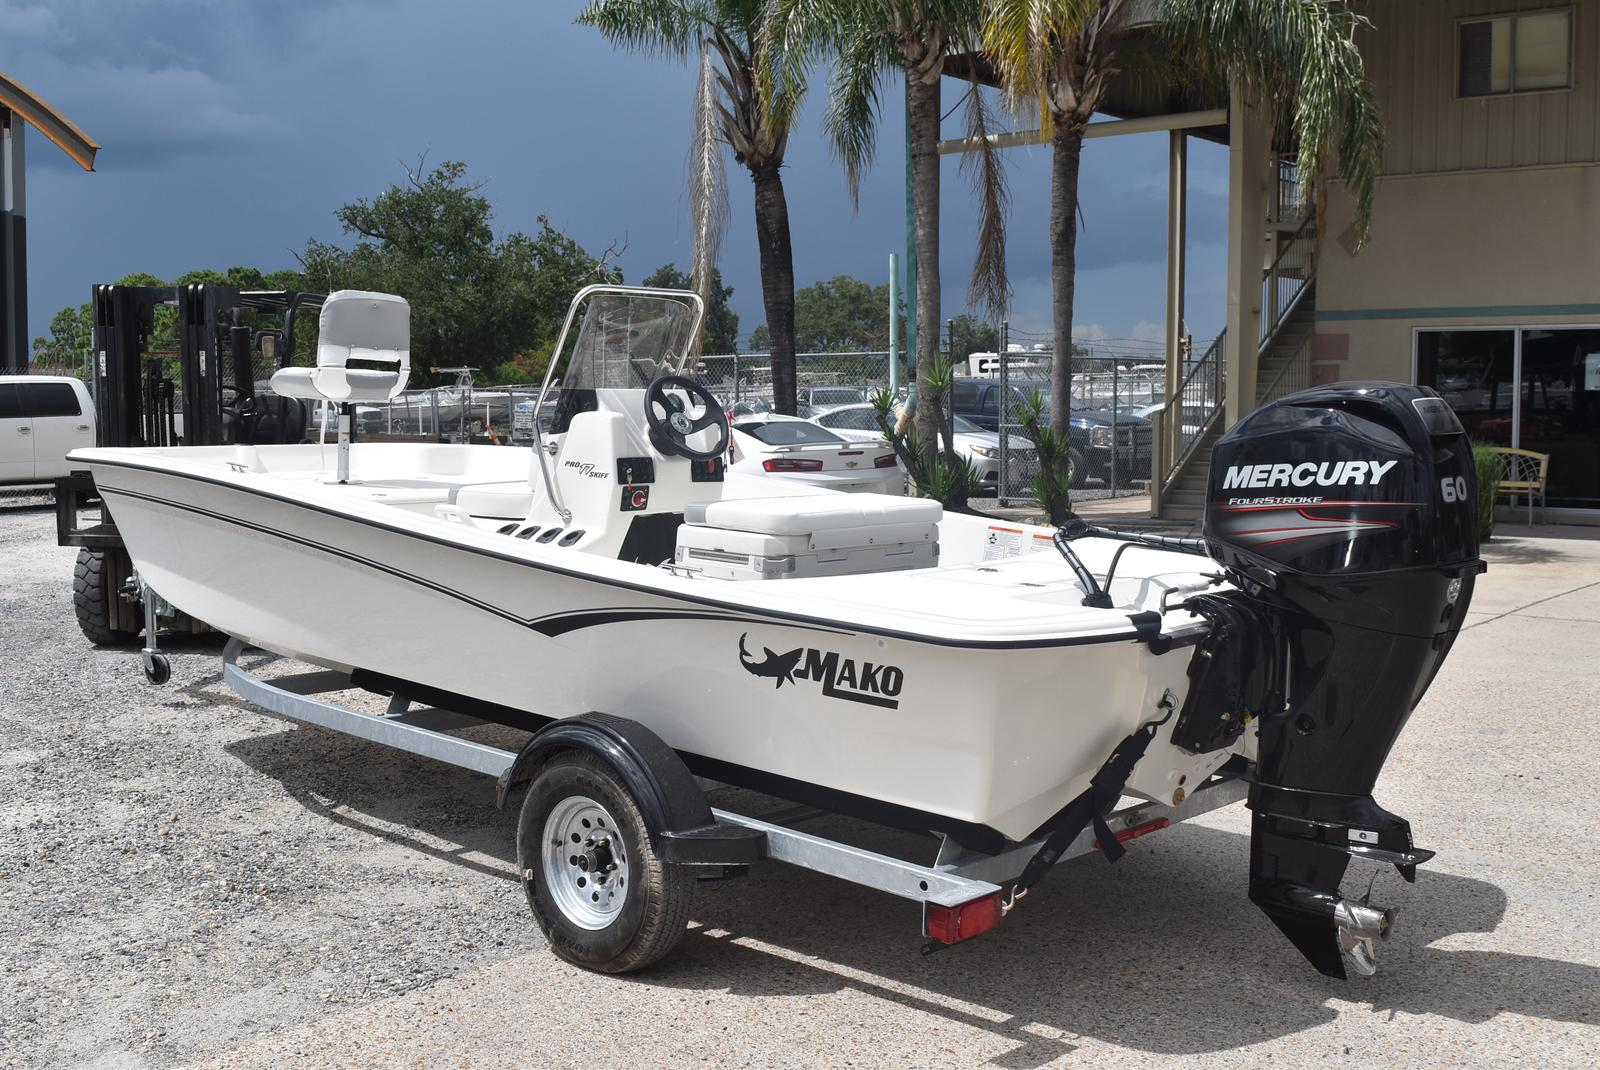 2020 Mako boat for sale, model of the boat is Pro Skiff 17, 75 ELPT & Image # 207 of 702